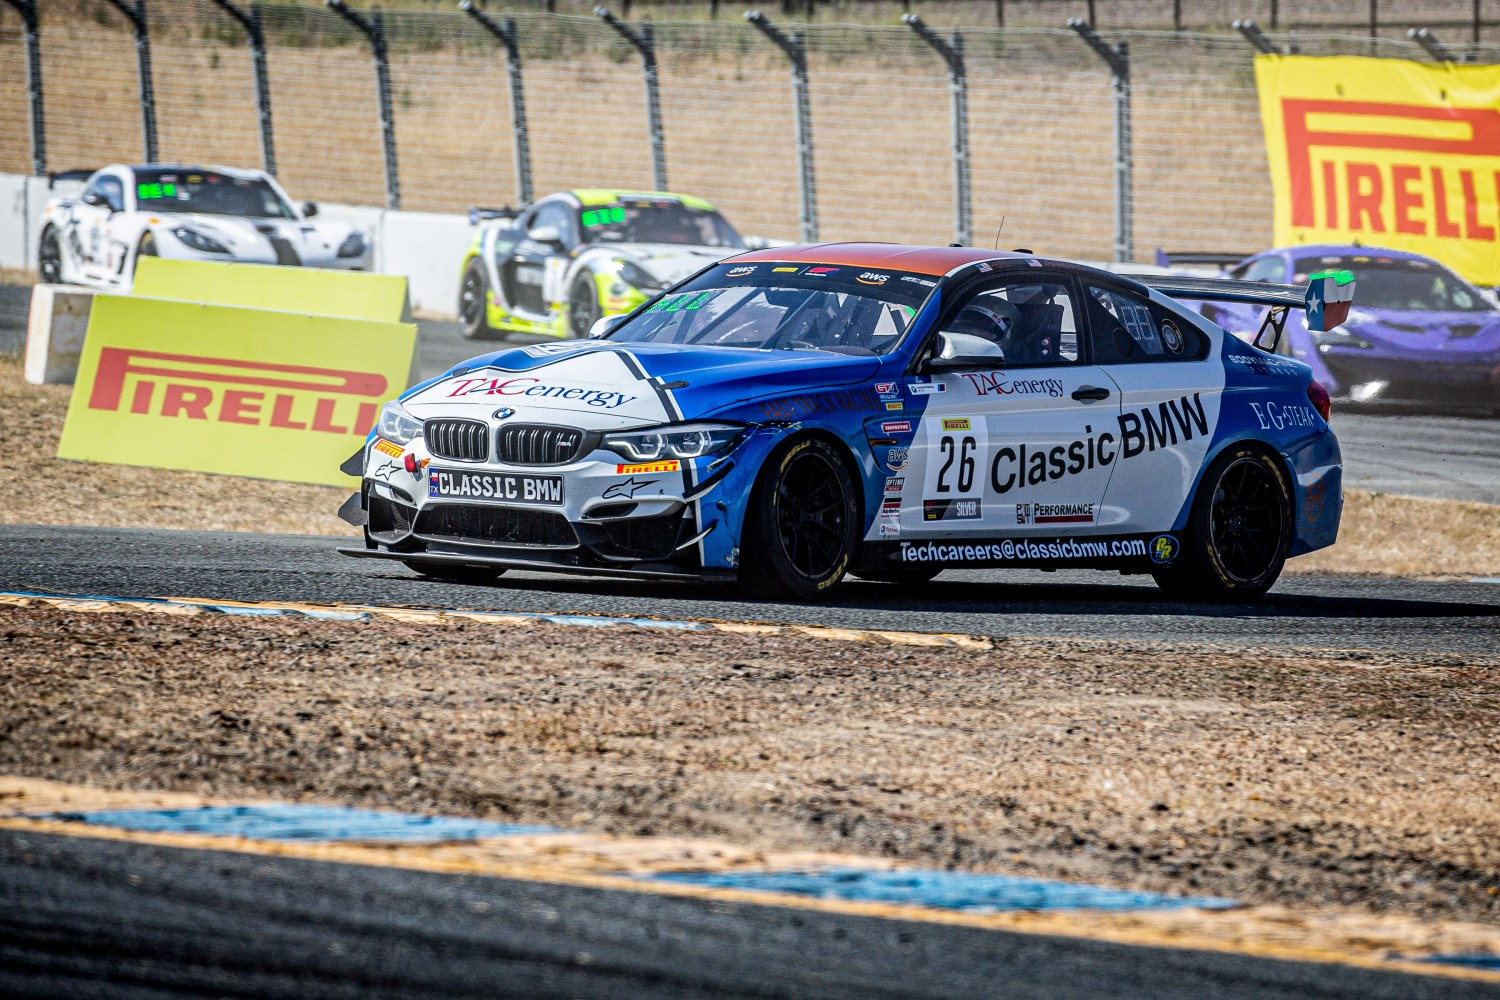 #26 BMW M4 GT4 of Chandler Hull and Toby Grahovec, Classic BMW, GT4 SprintX Pro-Am, 2020 SRO Motorsports Group - Sonoma Raceway, Sonoma CA  | Brian Cleary